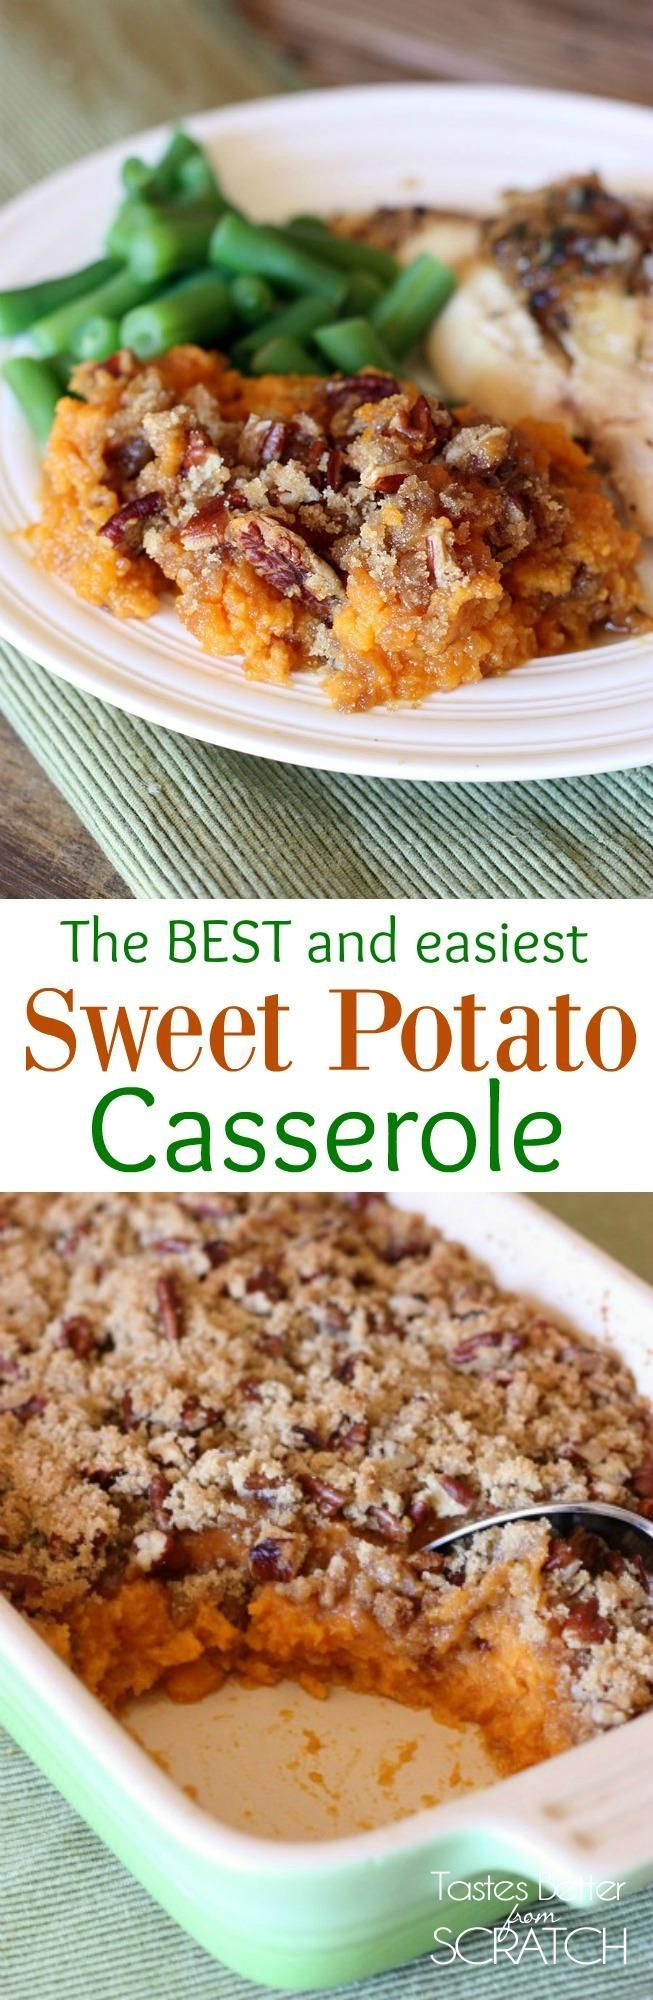 Sweet Potato Souffle--a delicious sweet potato casserole with brown sugar pecan topping. My FAVORITE easy thanksgiving side dish! | Tastes Better From Scratch